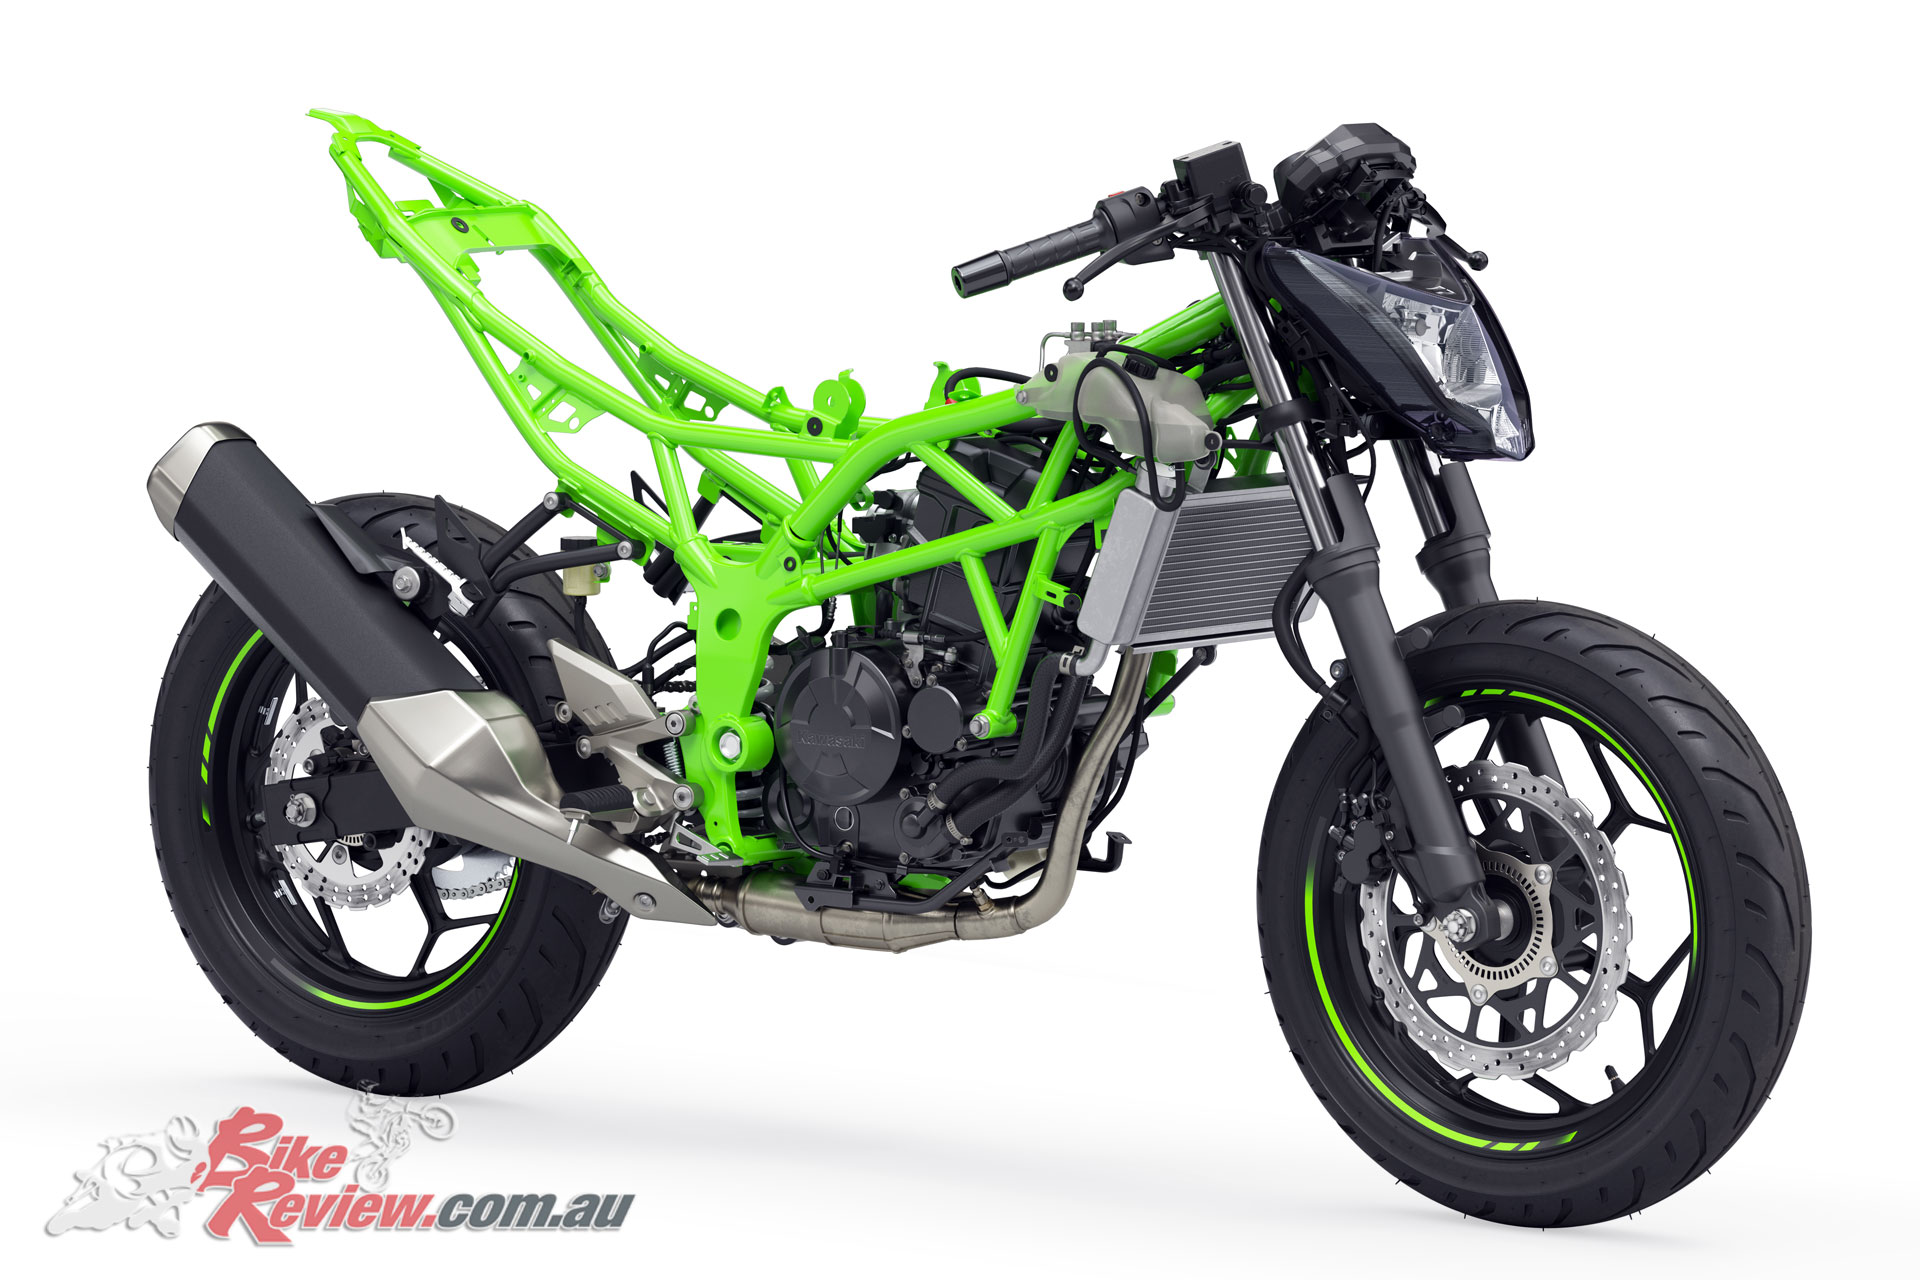 New Model 2019 Kawasaki Z125 Ninja 125 Bike Review